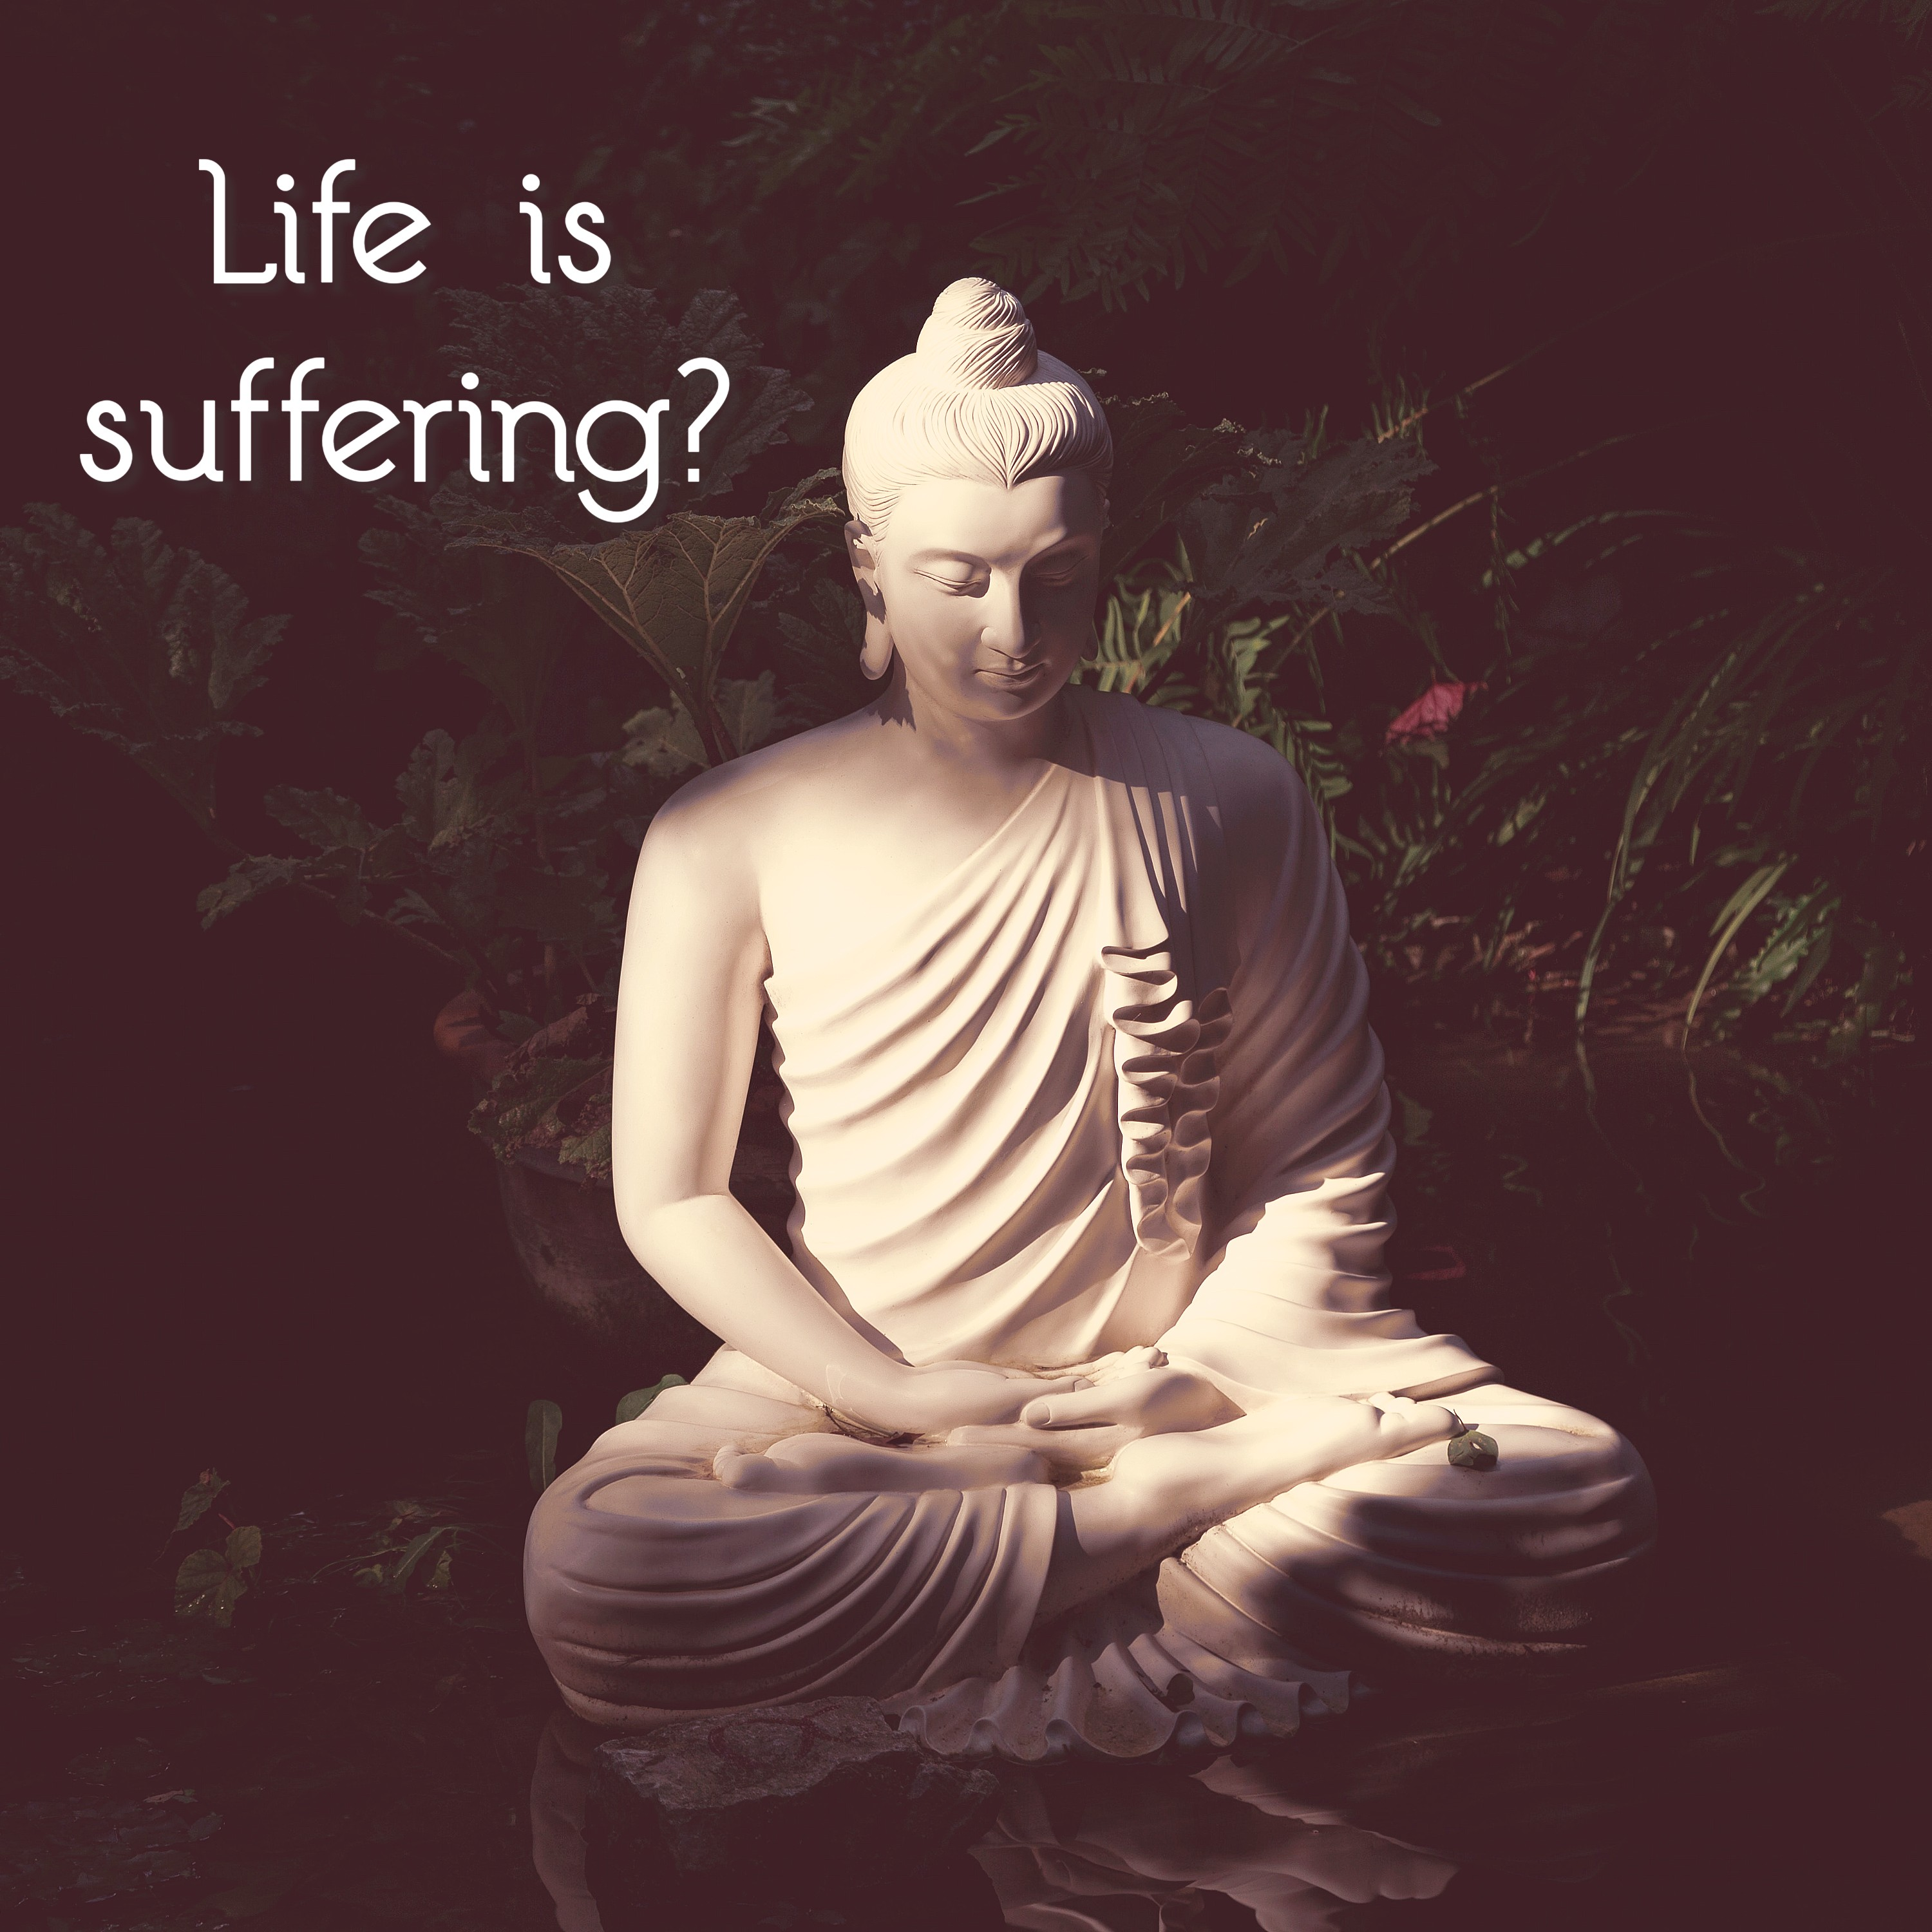 Life is suffering?